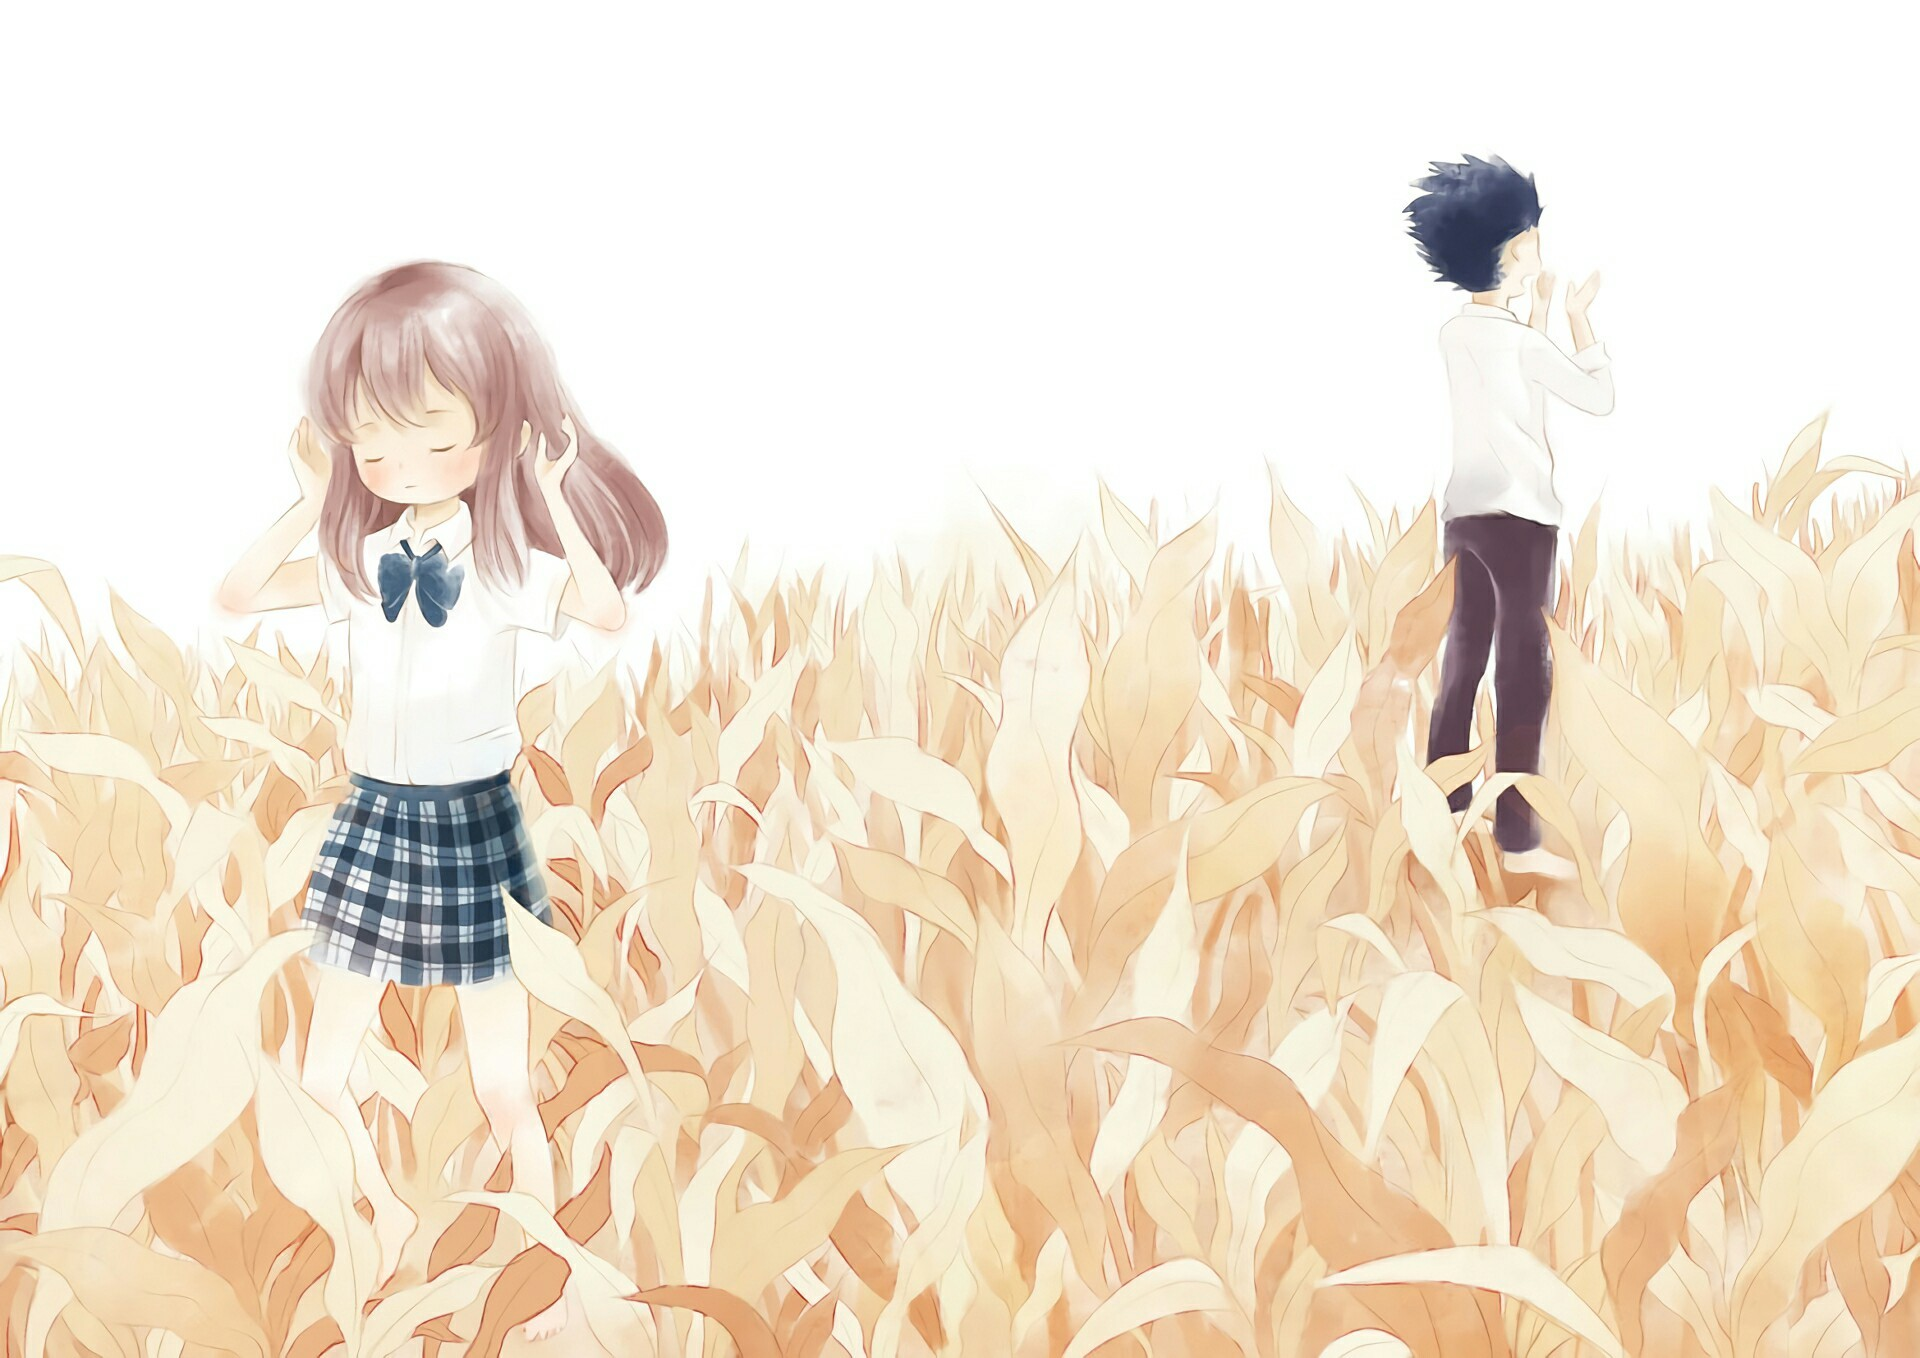 1920x1358 koe no katachi computer desktop backgrounds (Sailor Kingsman. Find this Pin  and more on A Silent Voice ...